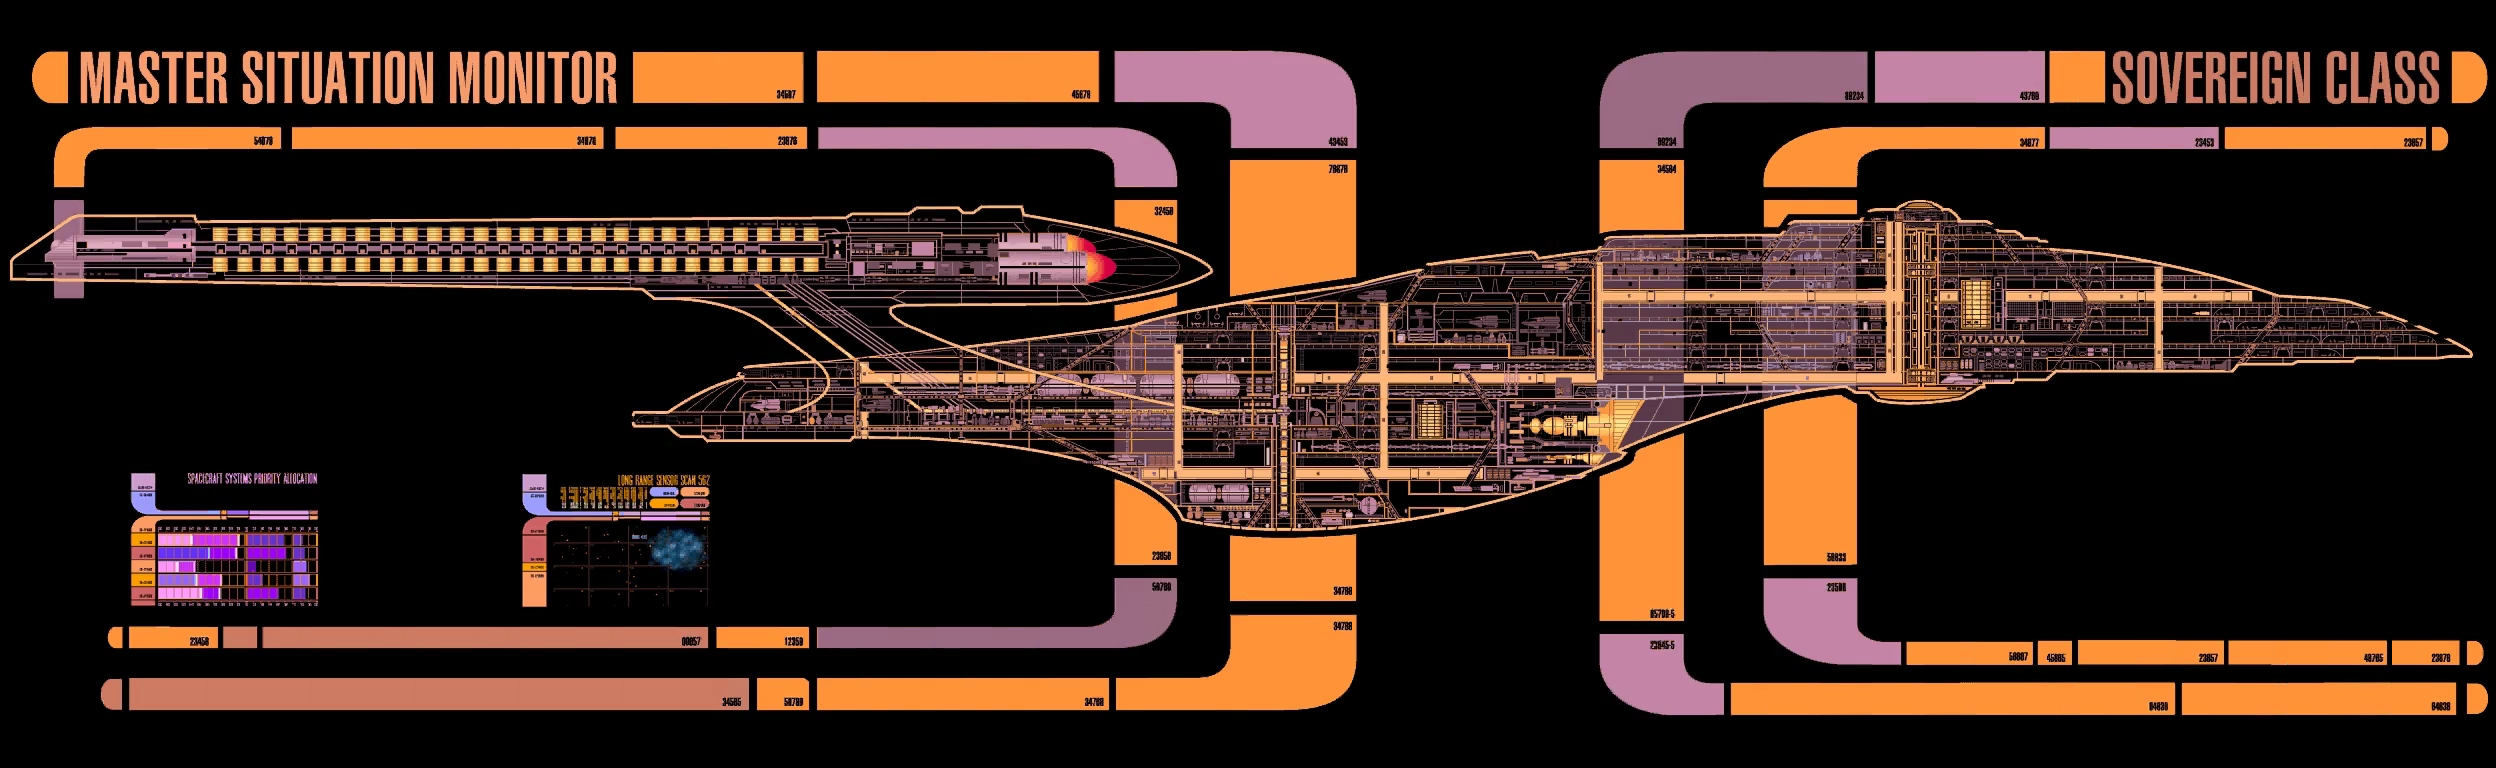 Star Trek Engineering Schematics Excelsior And Miranda Class Fleets Workhorses But Why Previously